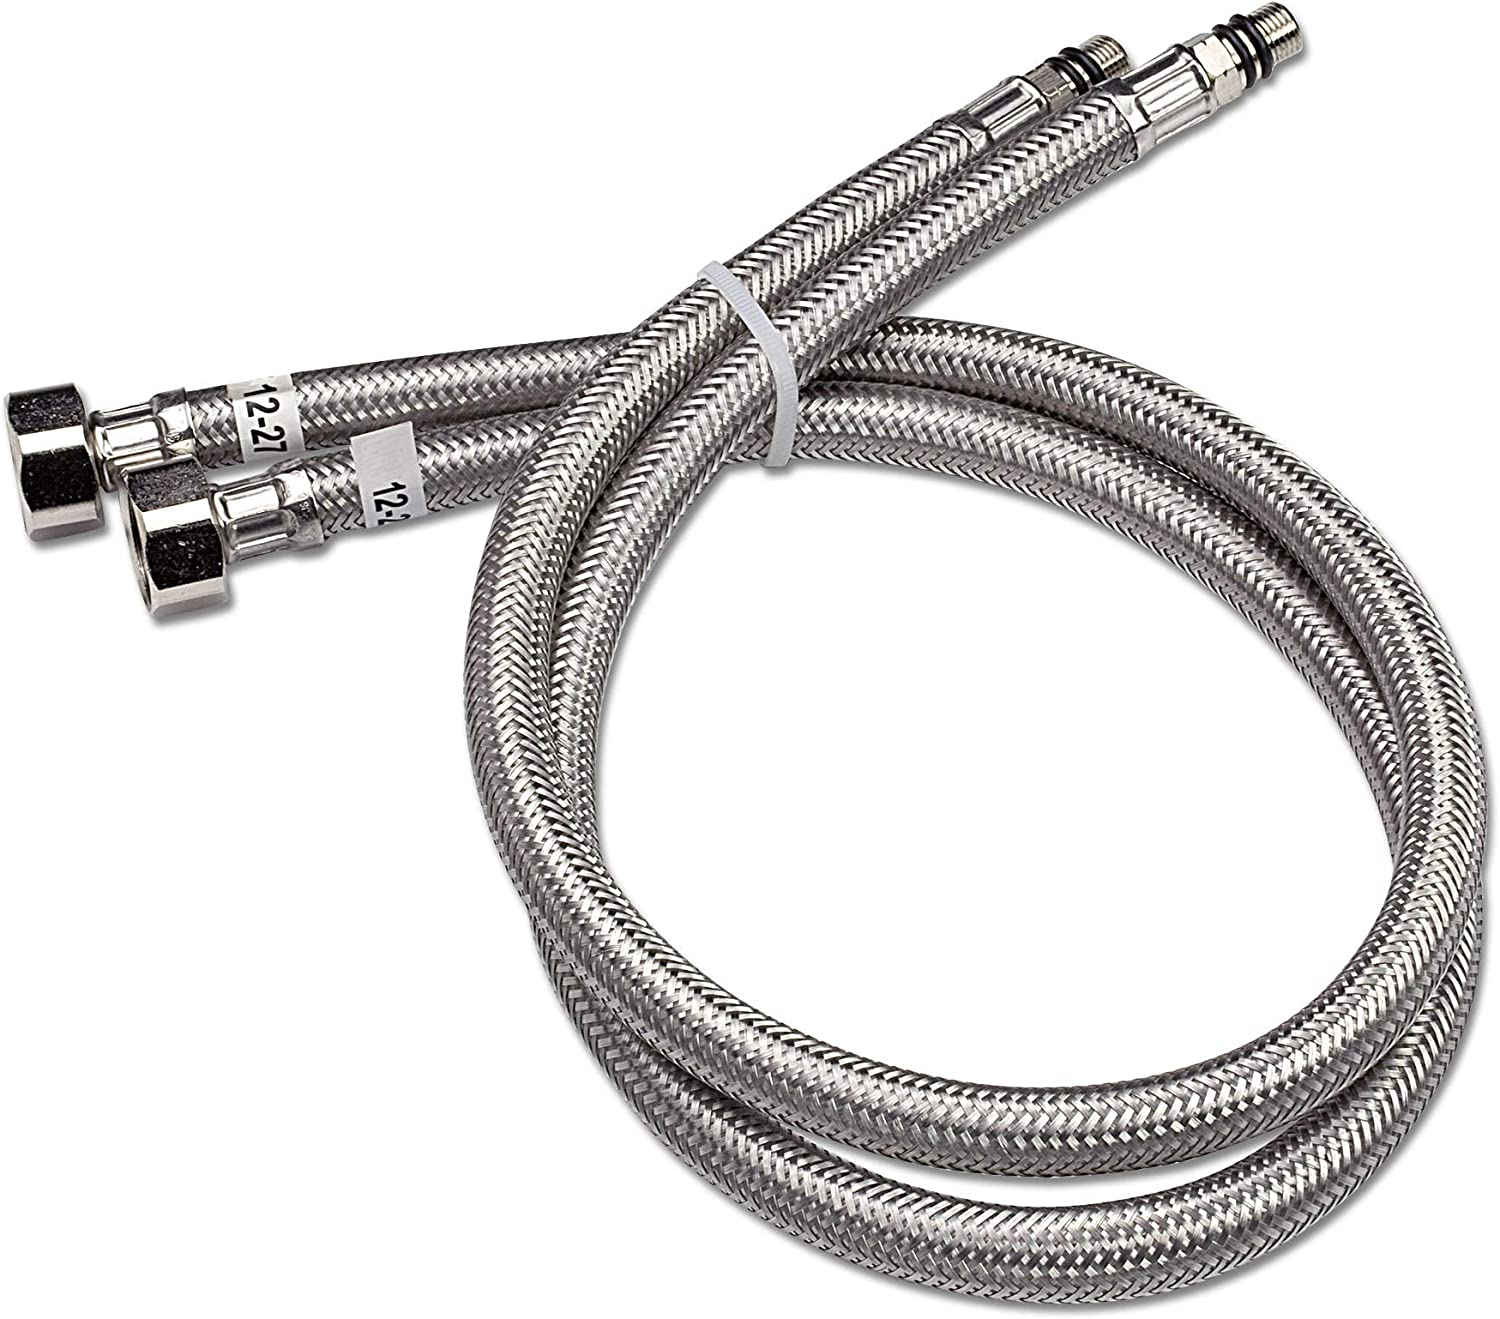 "Flexible Water Supply Hoses 3//8/"" OD 19/"" Long M10 Male Sink Faucet Vessel Connect"